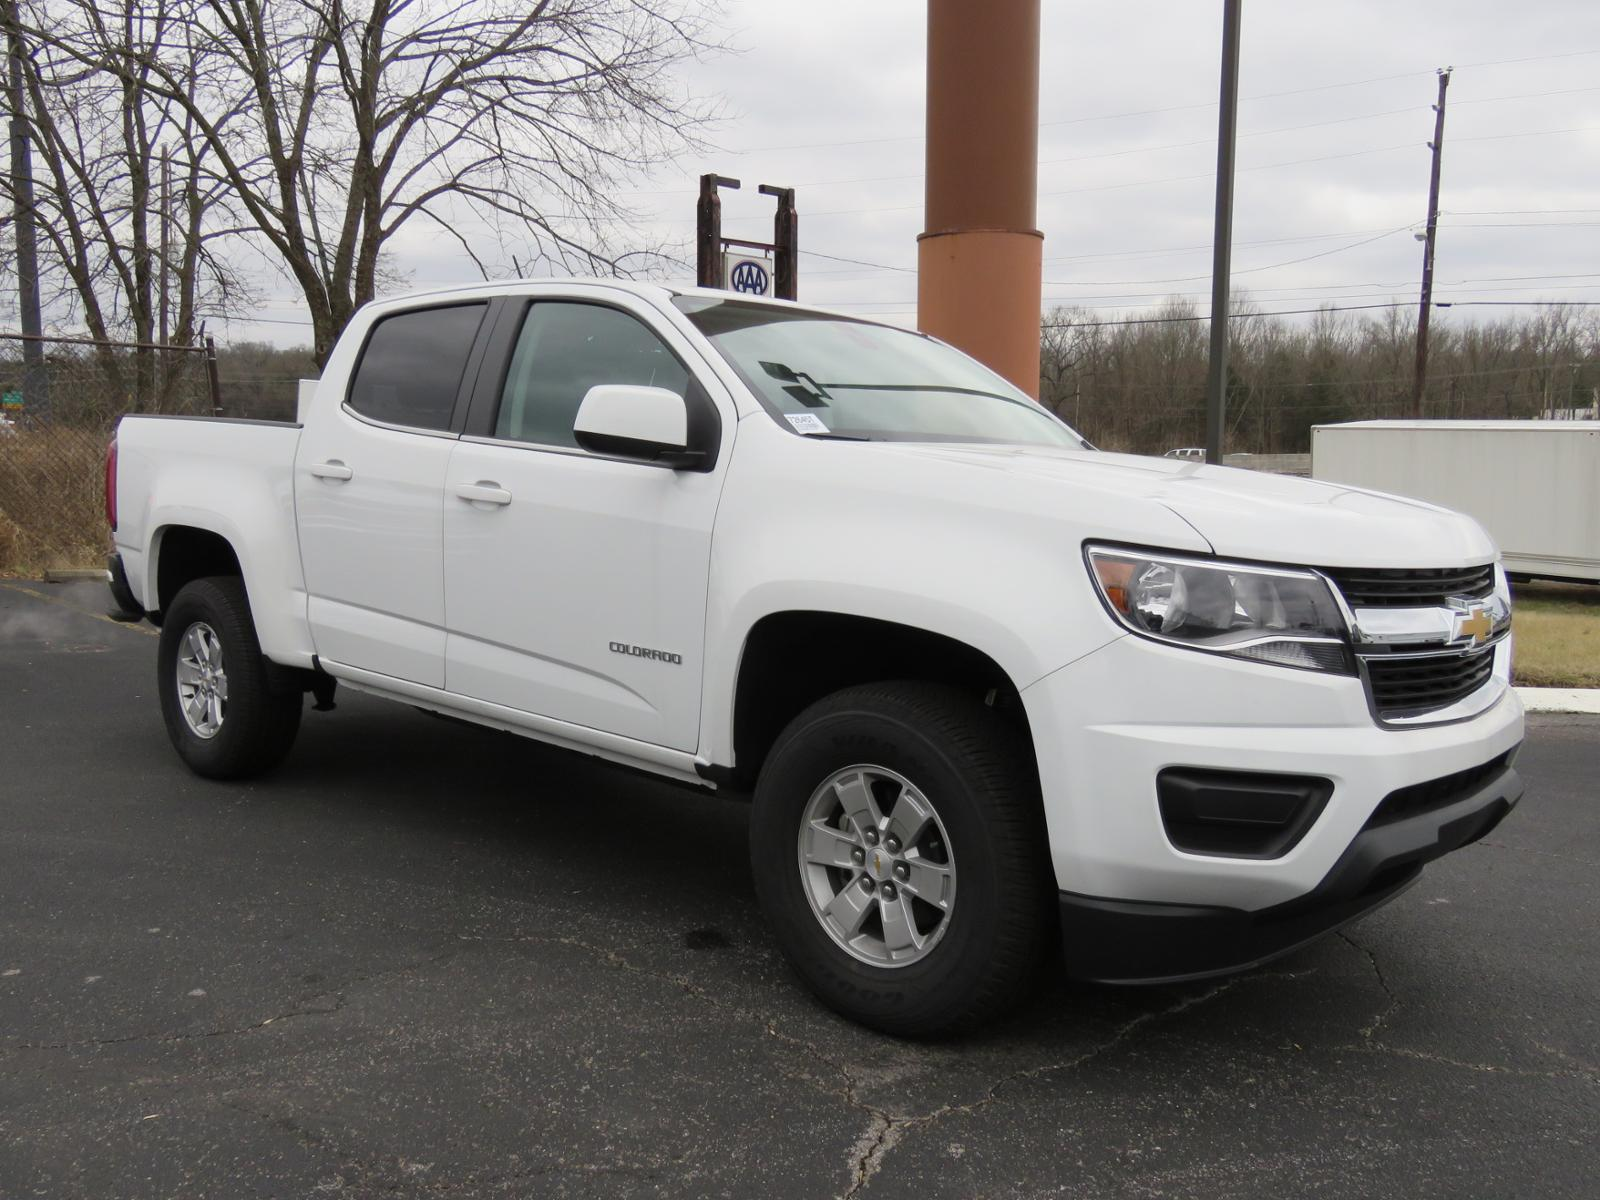 New 2017 Chevrolet Colorado 2WD WT Crew Cab Pickup FK1735